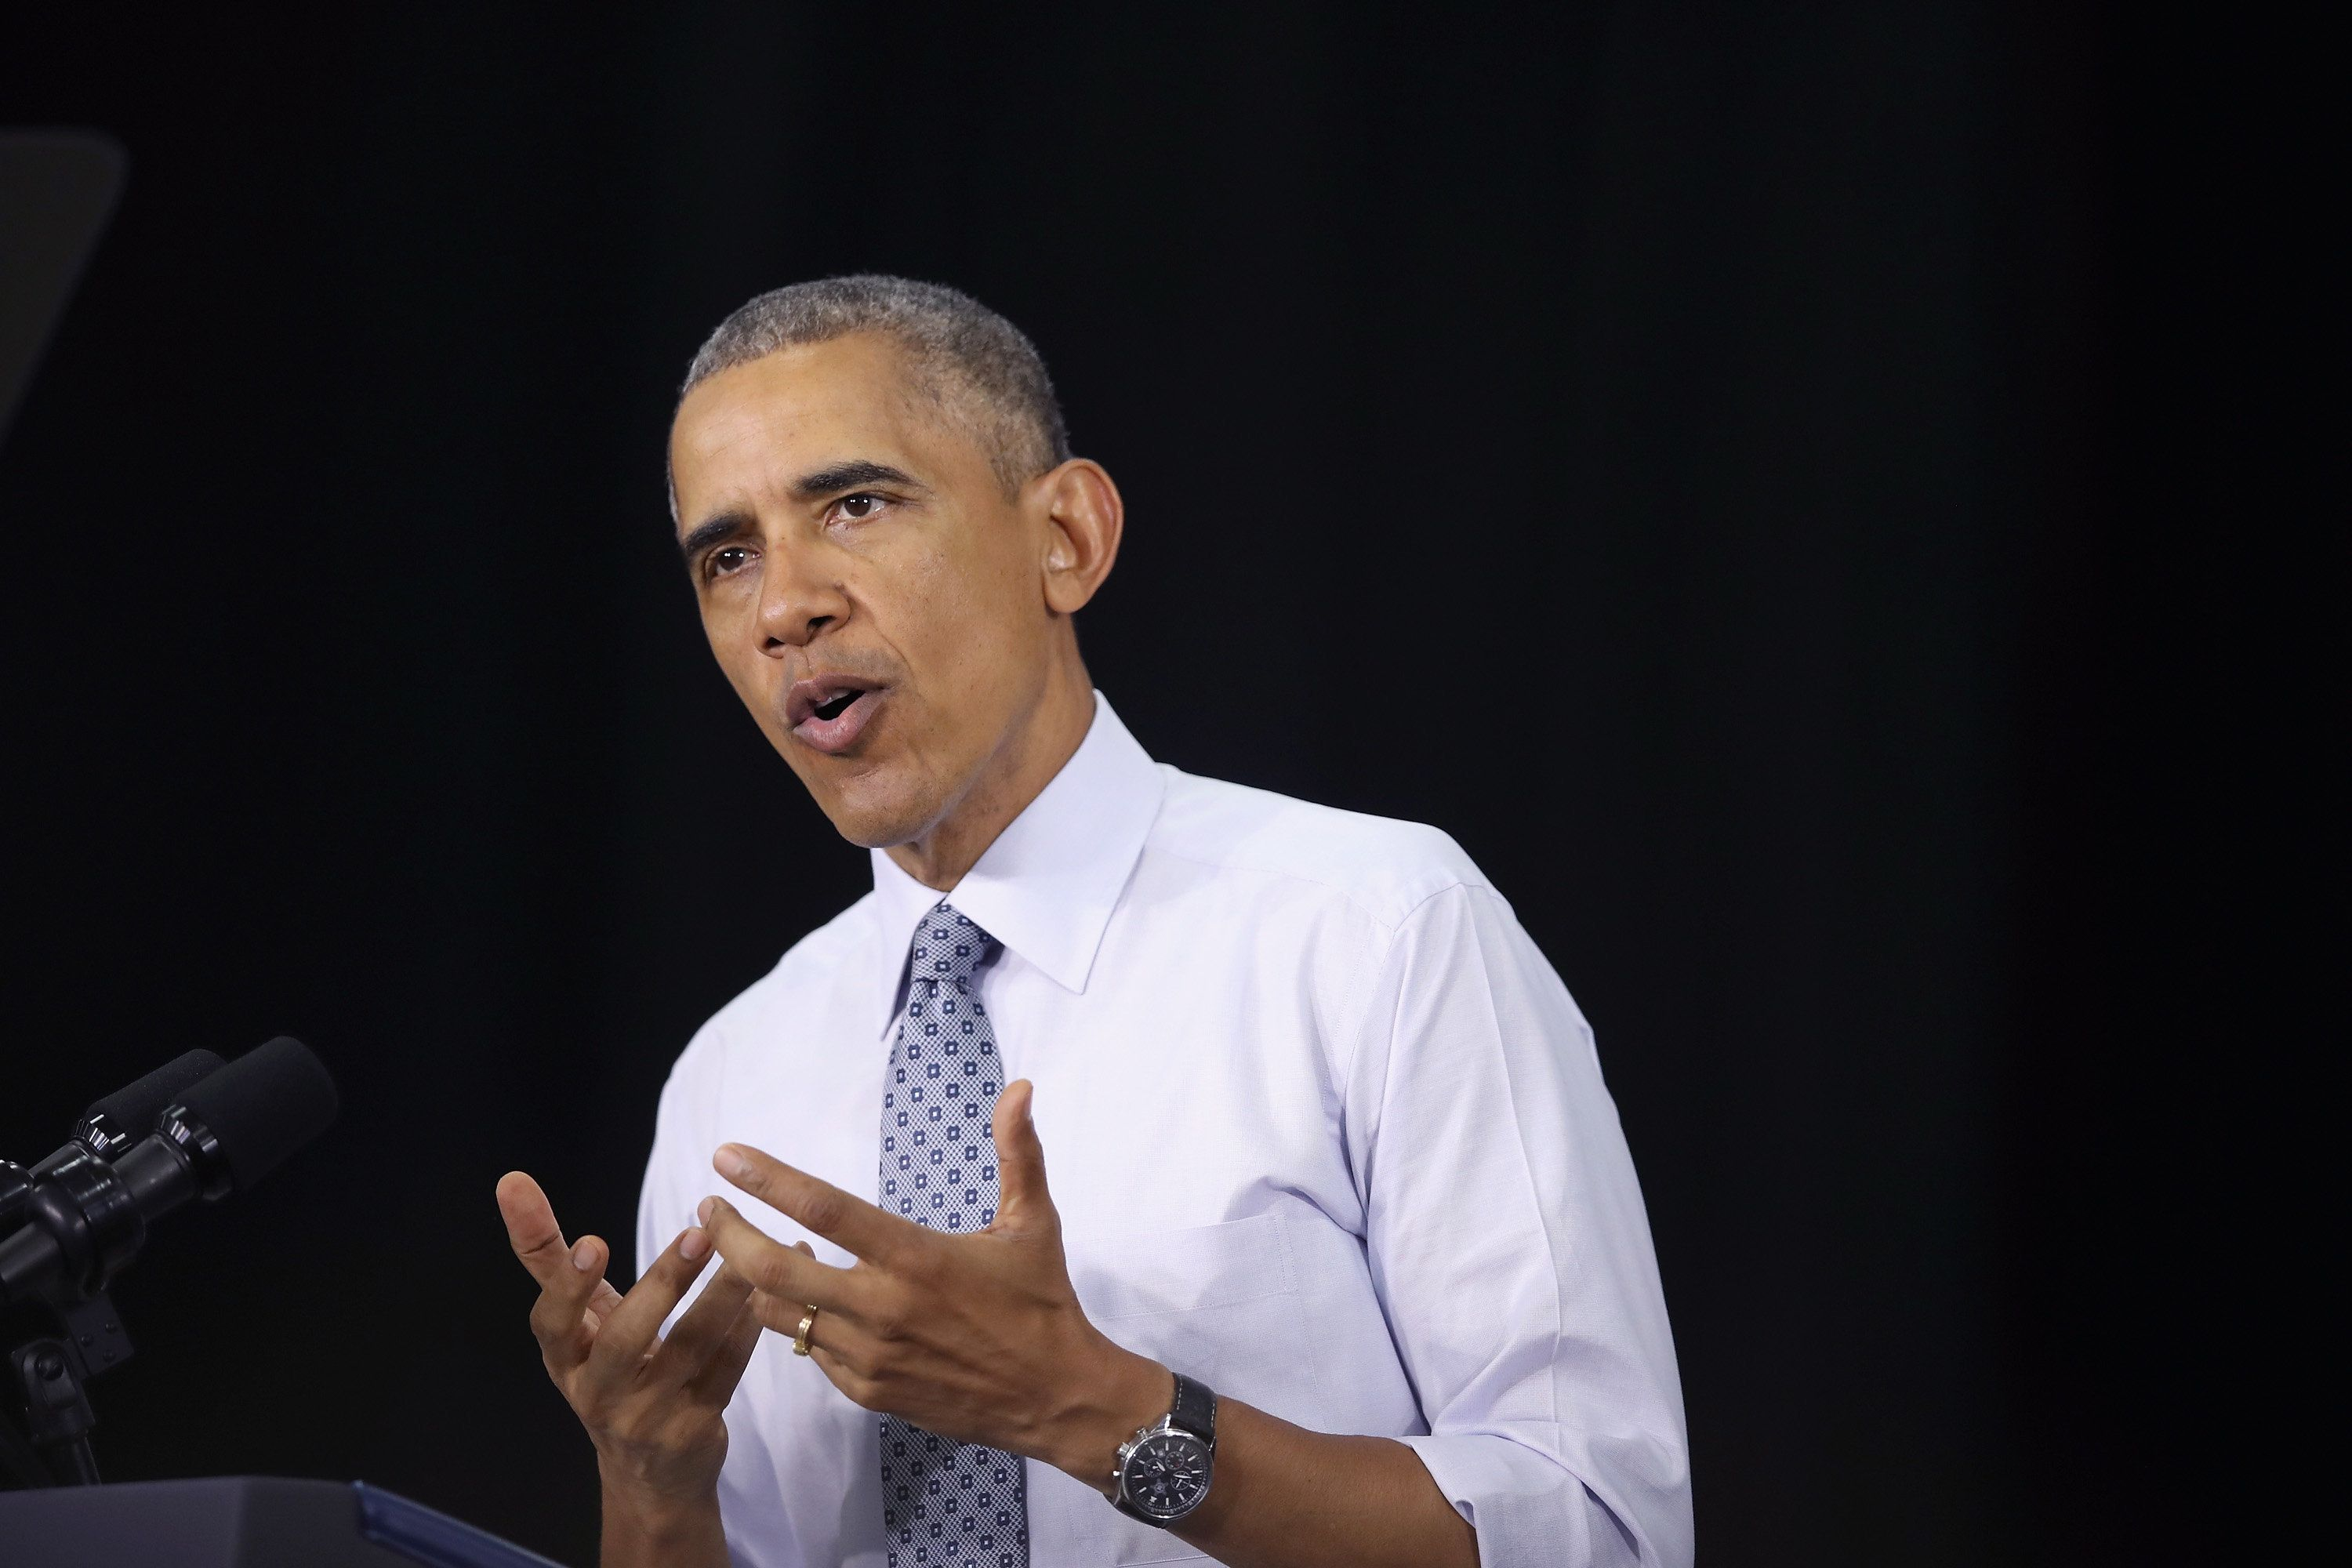 ELKHART, IN - JUNE 01:  President Barack Obama speaks at Concord Community High School on June 1, 2016 in Elkhart, Indiana. Obama returned to the school, which he visited more than seven years ago, to highlight economic progress made during his administration.  (Photo by Scott Olson/Getty Images)